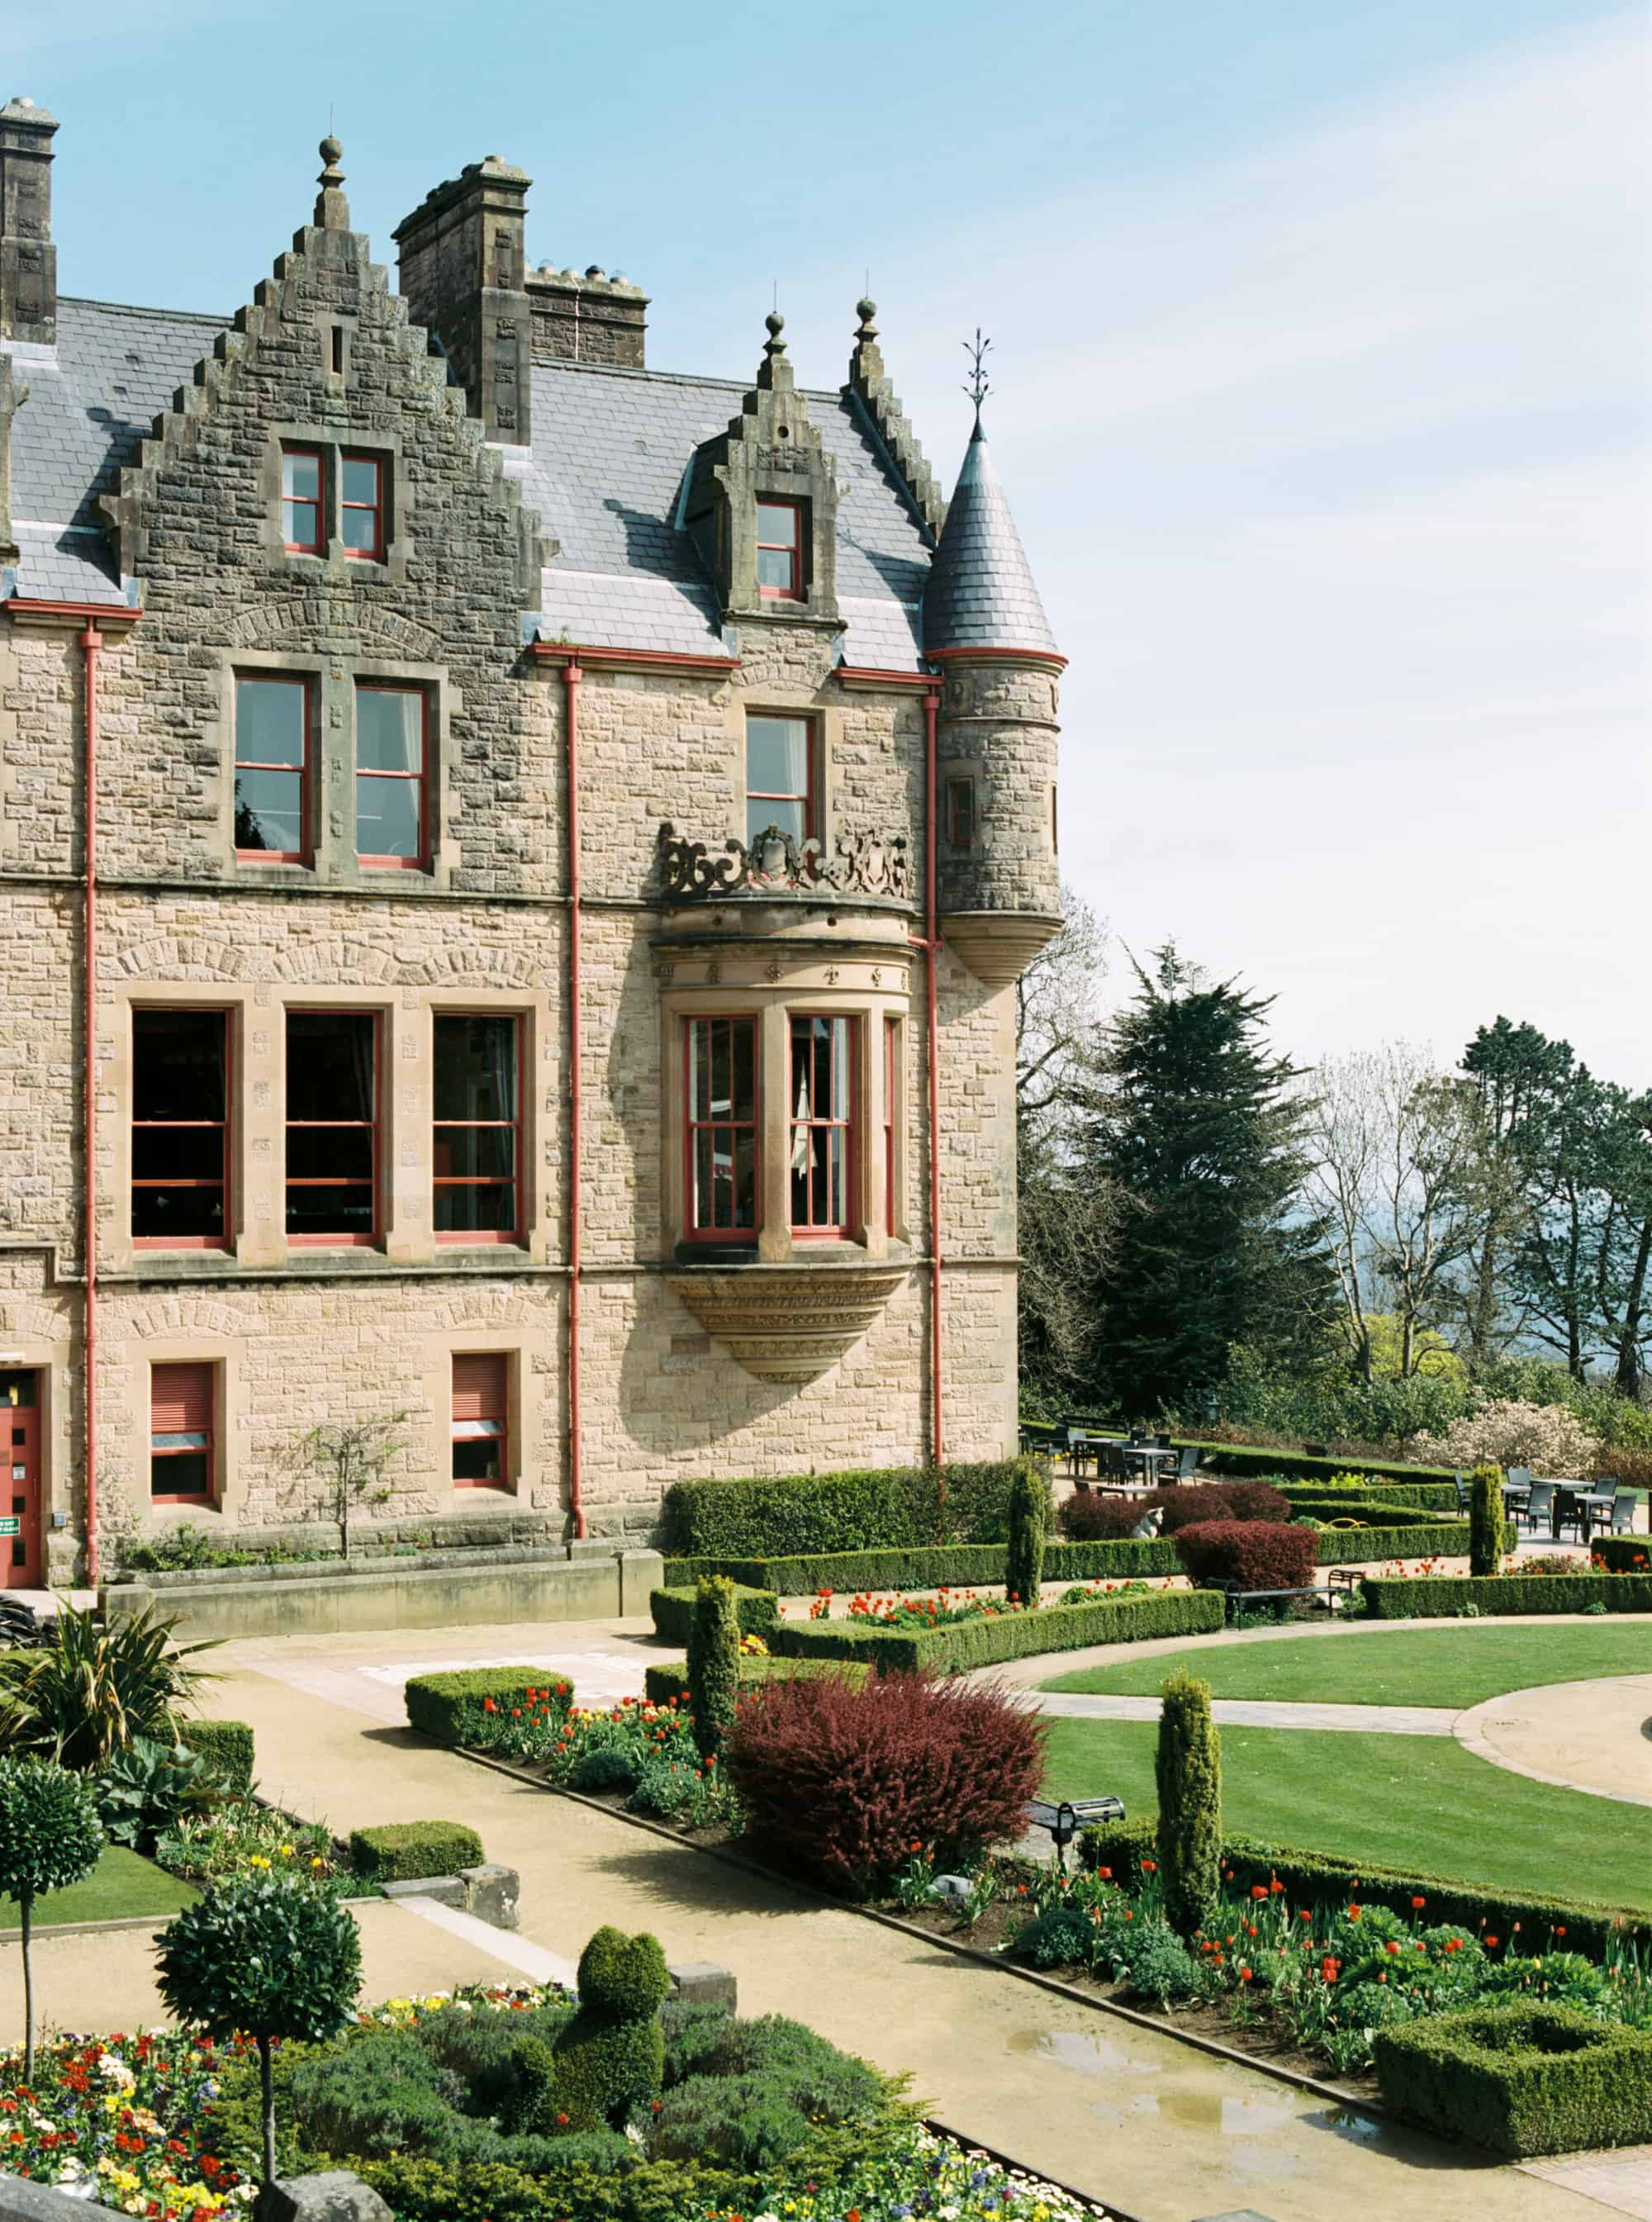 Belfast Castle in Belfast, Northern Ireland photographed on film by Kate Lamb of Wild in Love Photo